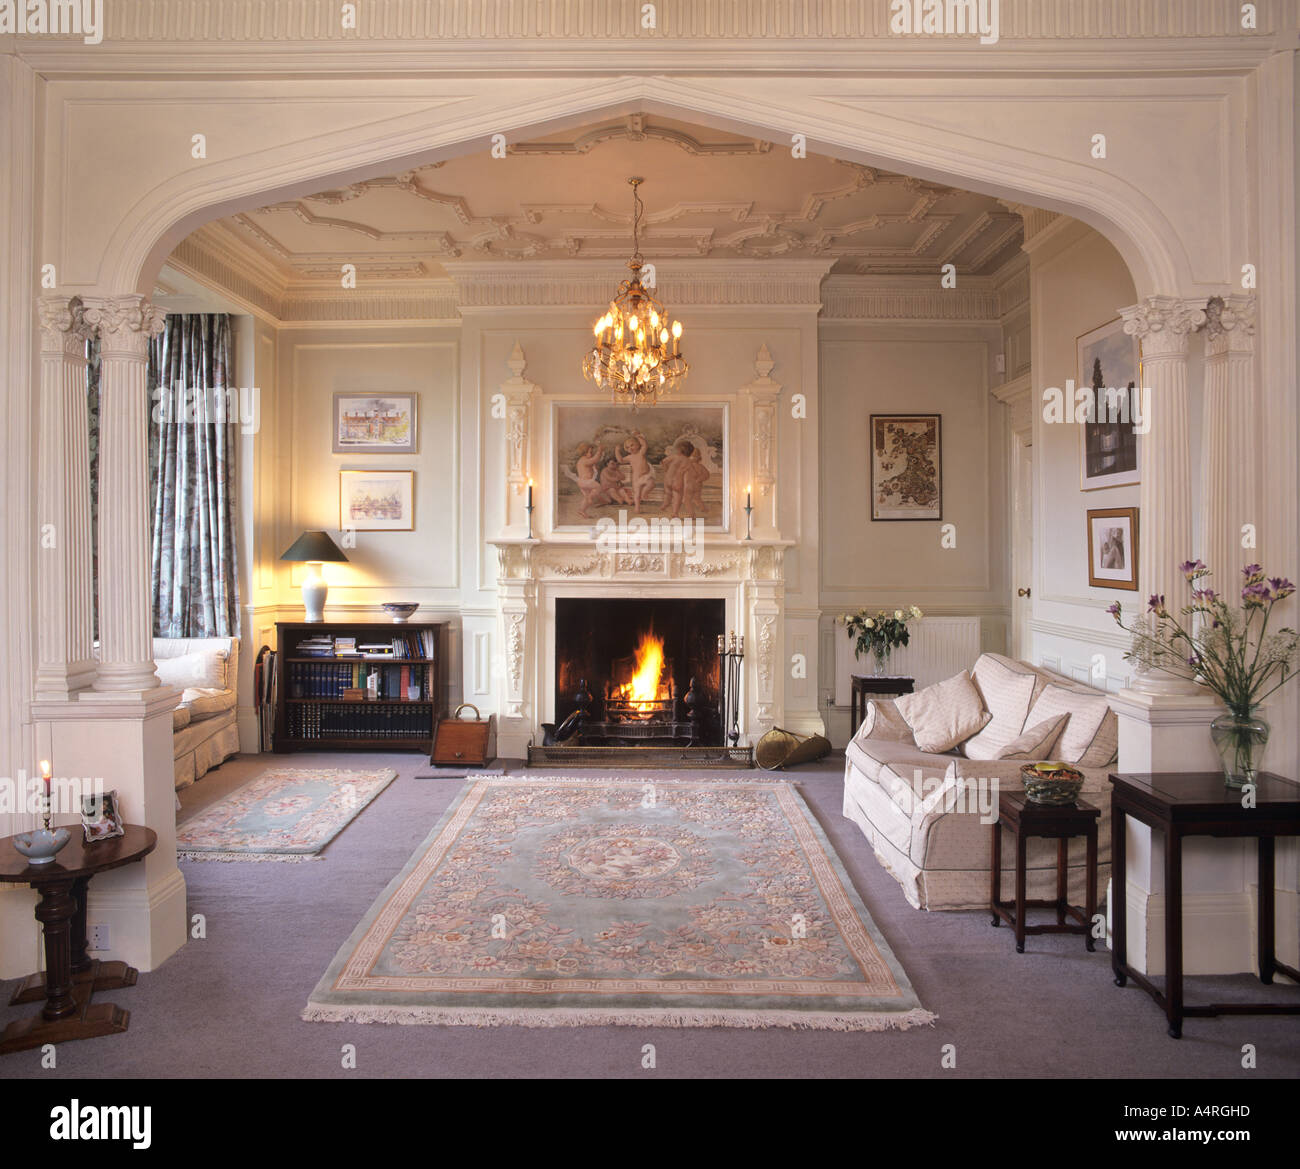 drawing room interior country house england stock photo royalty free image 6348572 alamy. Black Bedroom Furniture Sets. Home Design Ideas